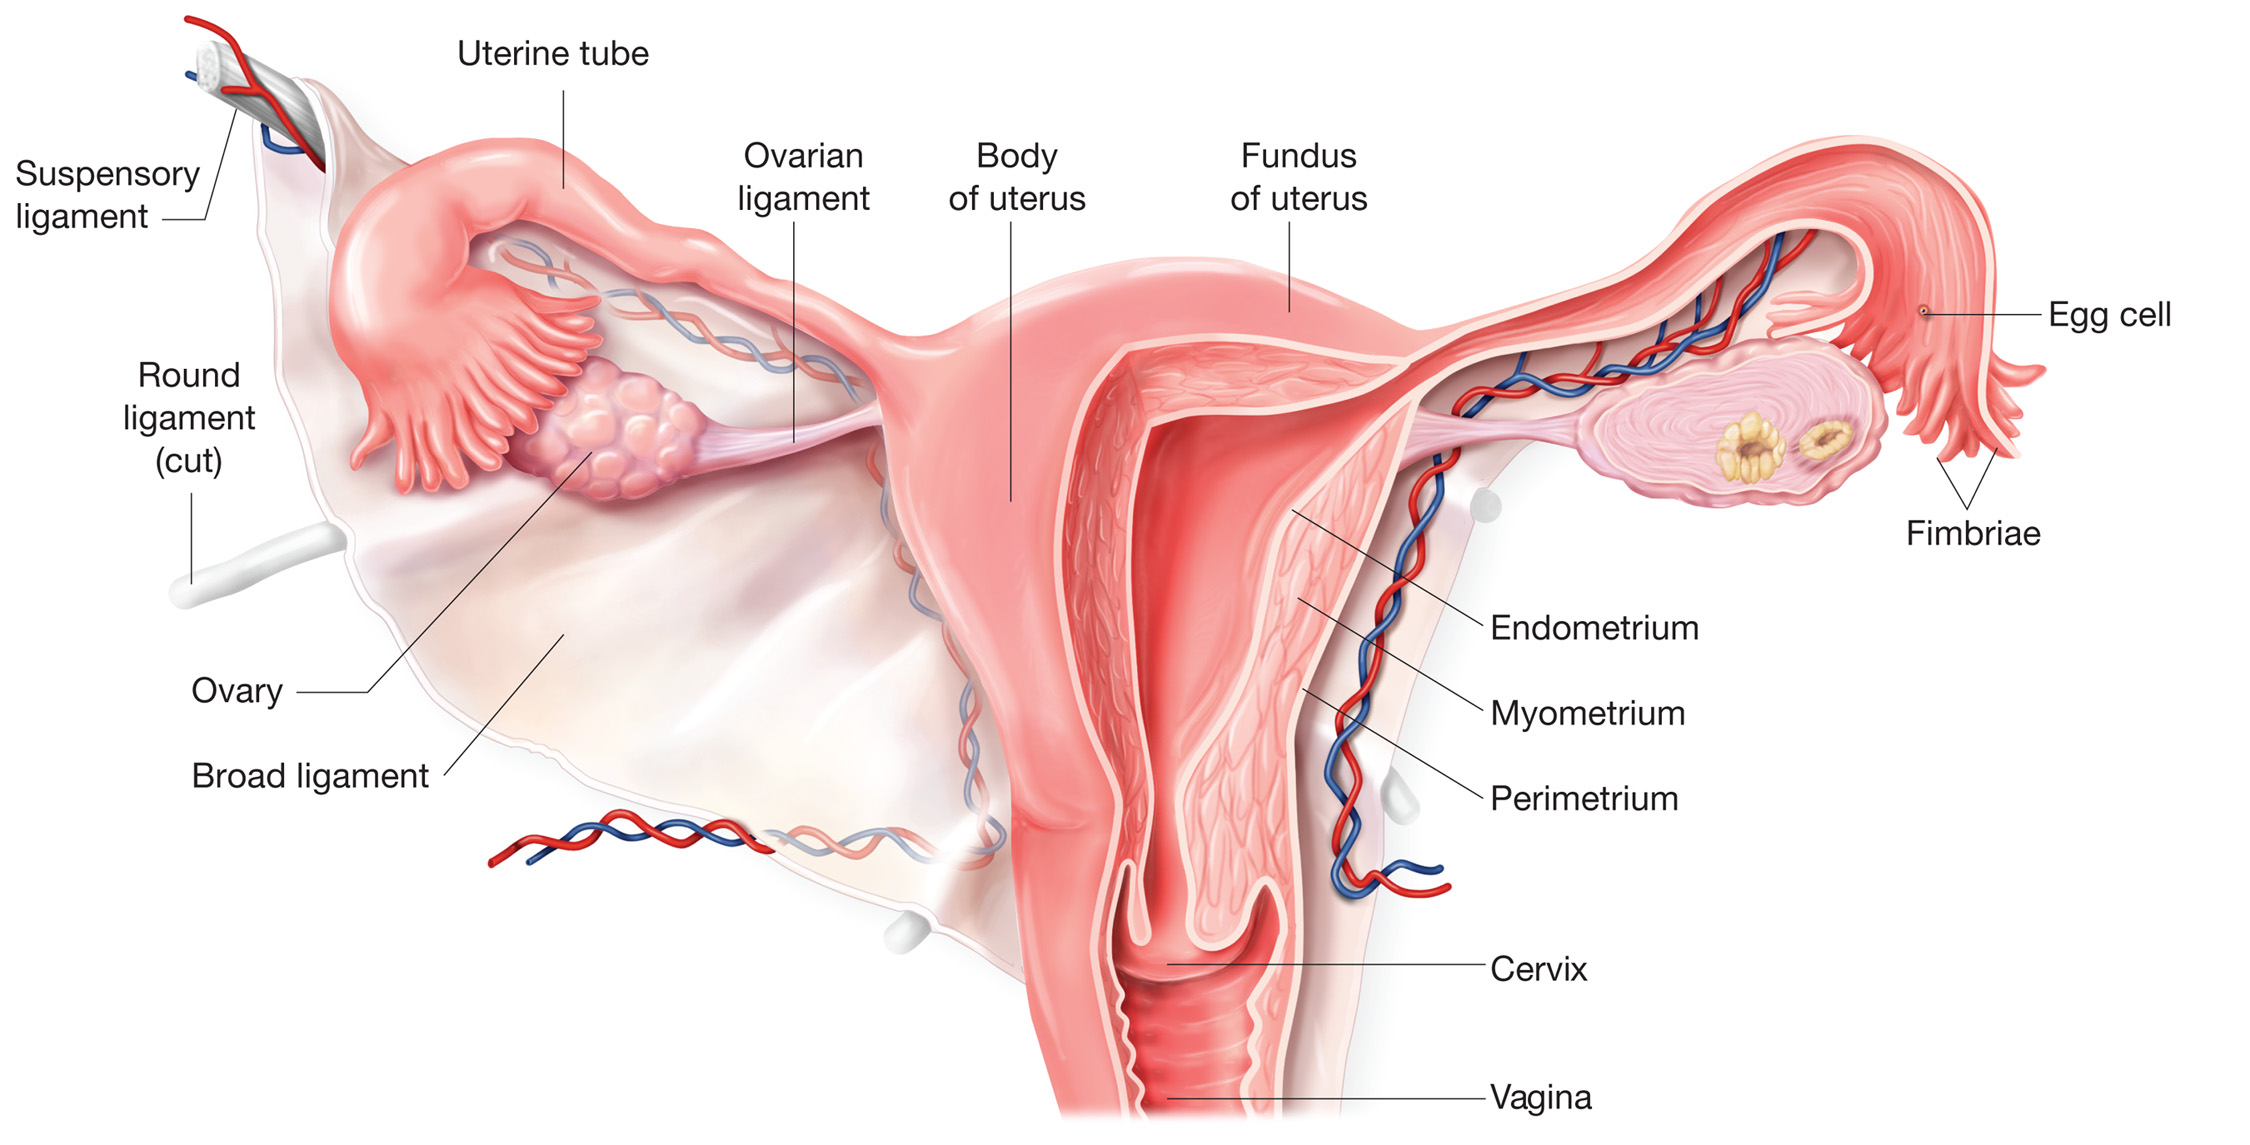 The uterus | Anatomy of the uterus | Physiology of the uterus ...